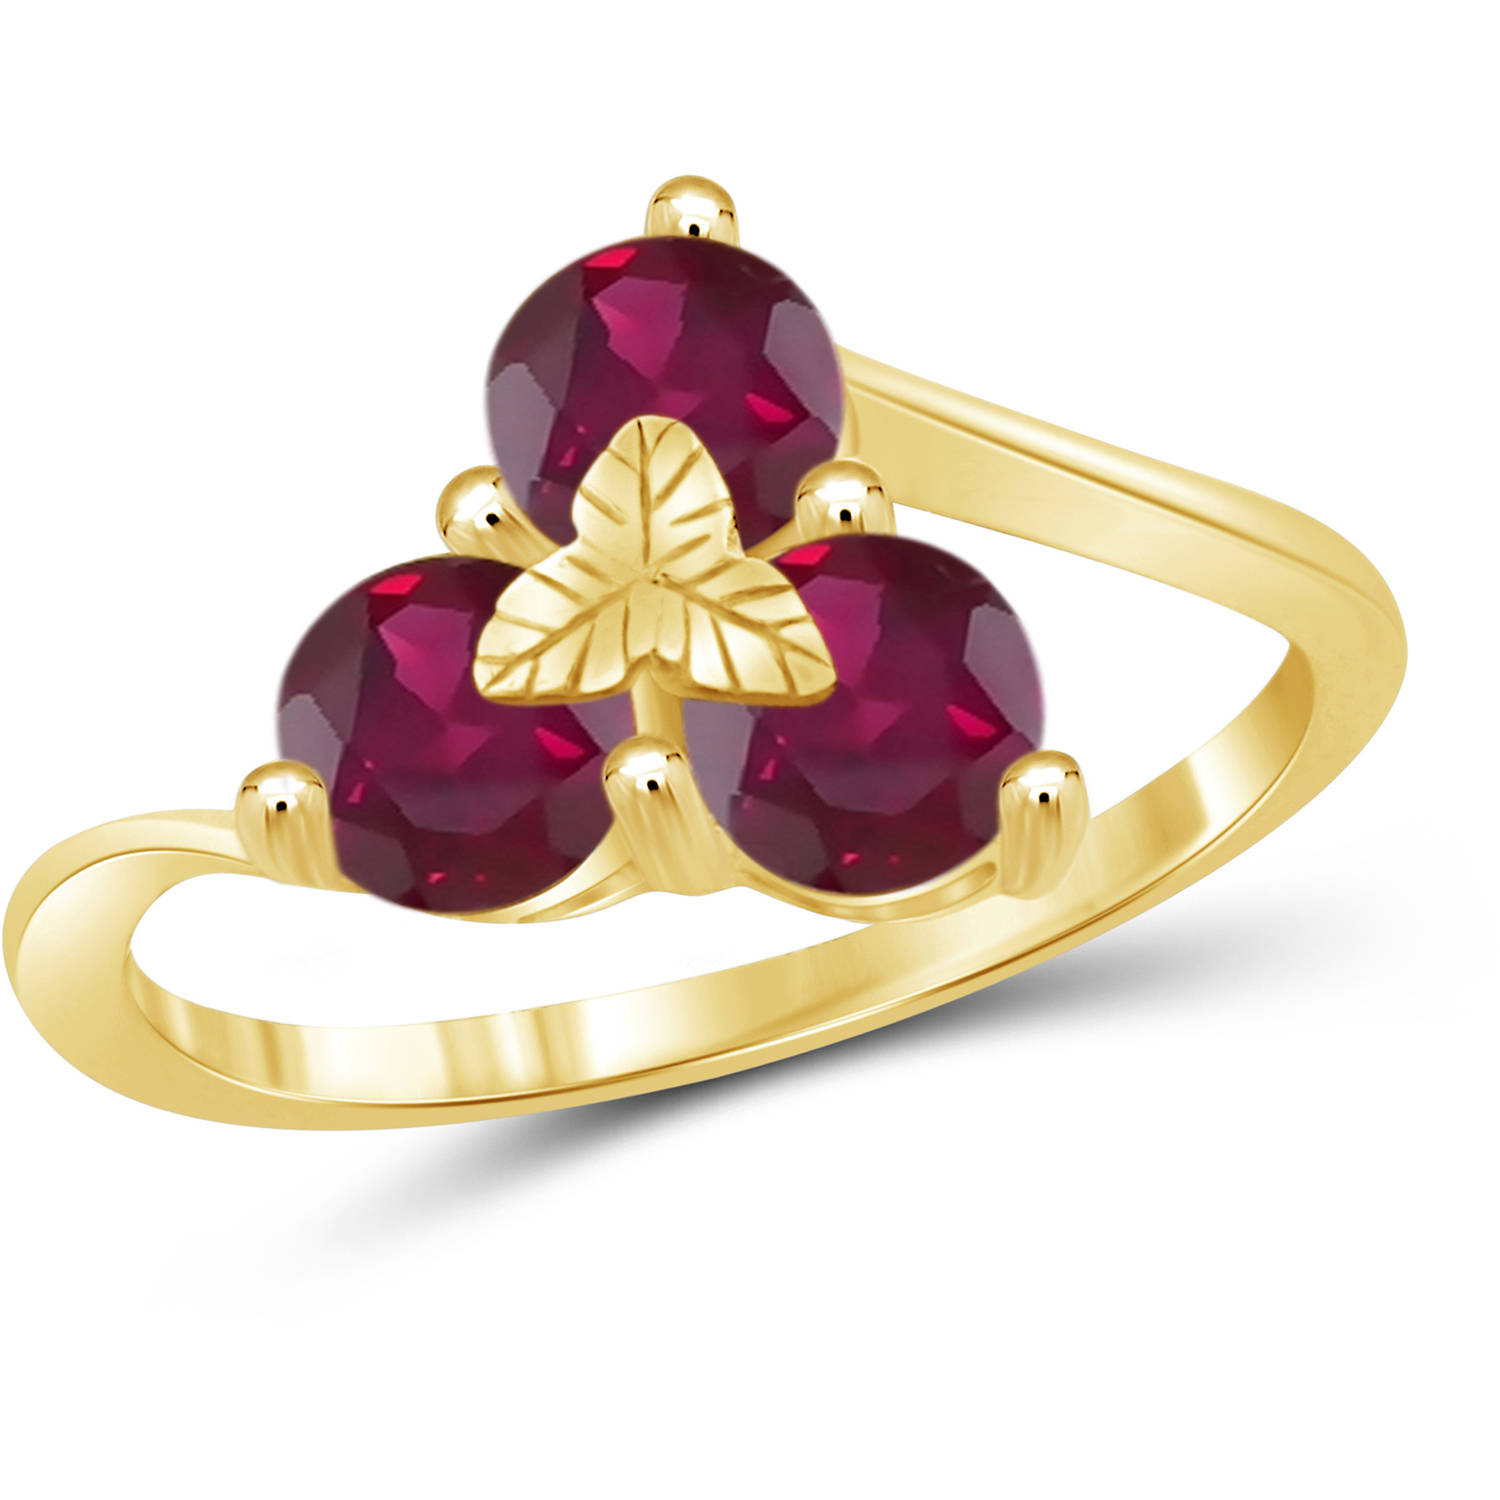 JewelersClub 2.04 Carat T.G.W. Ruby Gemstone Gold over Sterling Silver Ring by JewelersClub